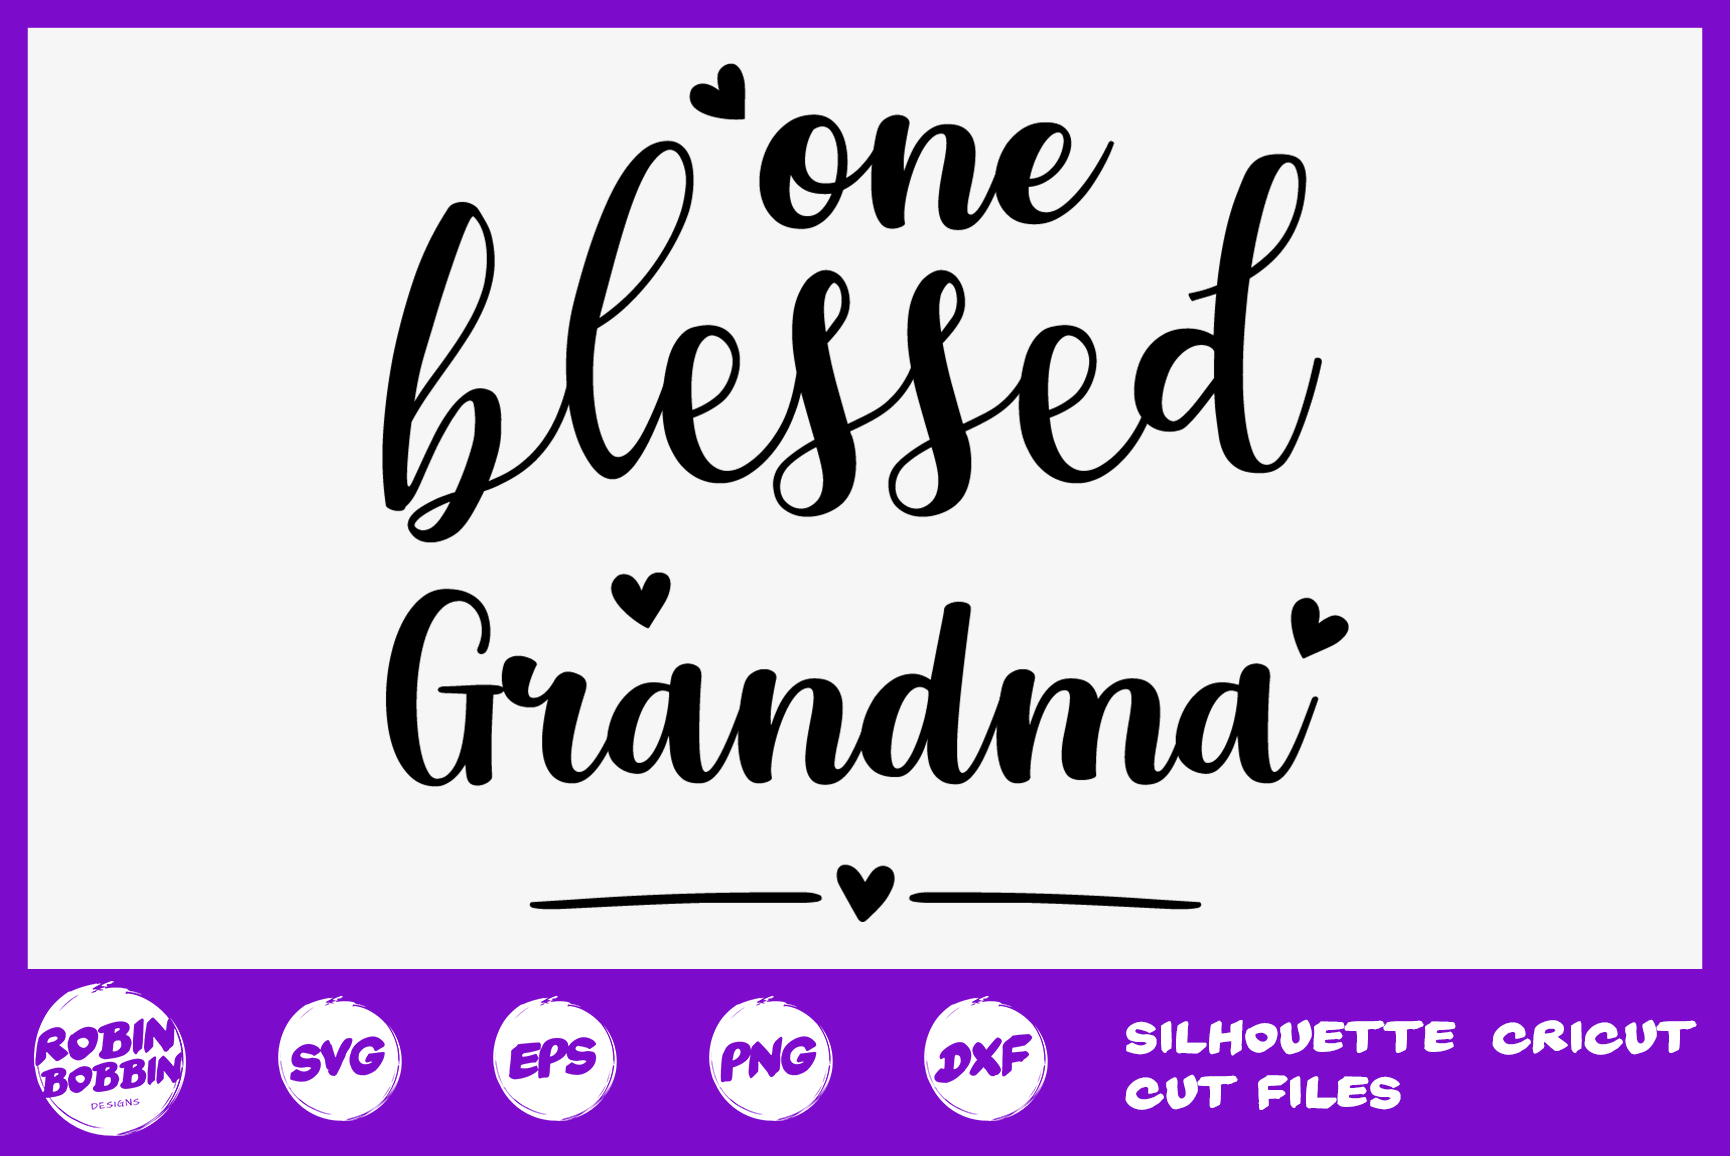 Download Free One Blessed Grandma Graphic By Robinbobbindesign Creative Fabrica for Cricut Explore, Silhouette and other cutting machines.